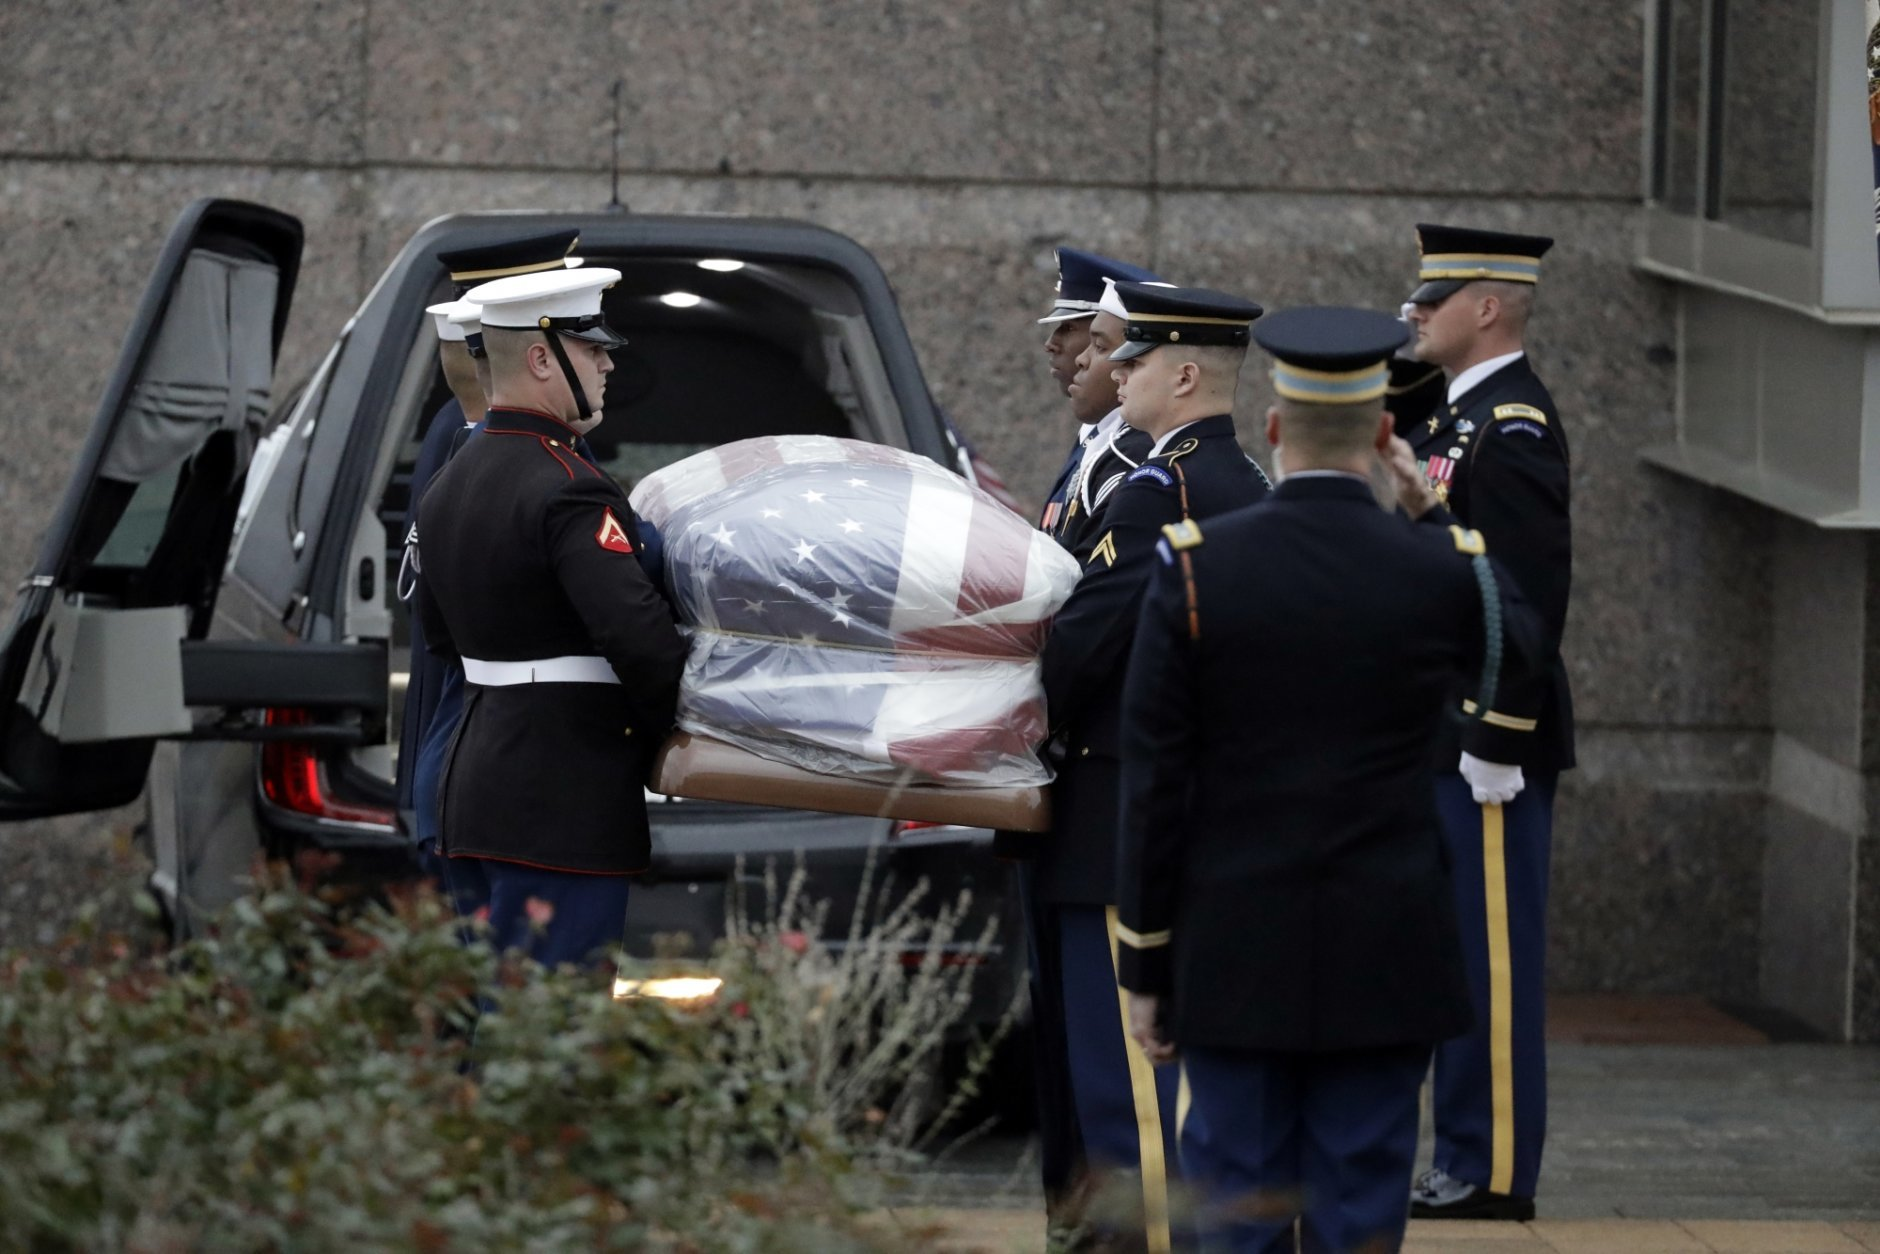 The flag-draped casket of former President George H.W. Bush is carried by a joint services military honor guard outside the George H.W. Bush Presidential Library and Museum Thursday, Dec. 6, 2018, in College Station, Texas. (AP Photo/Chris Carlson, Pool)